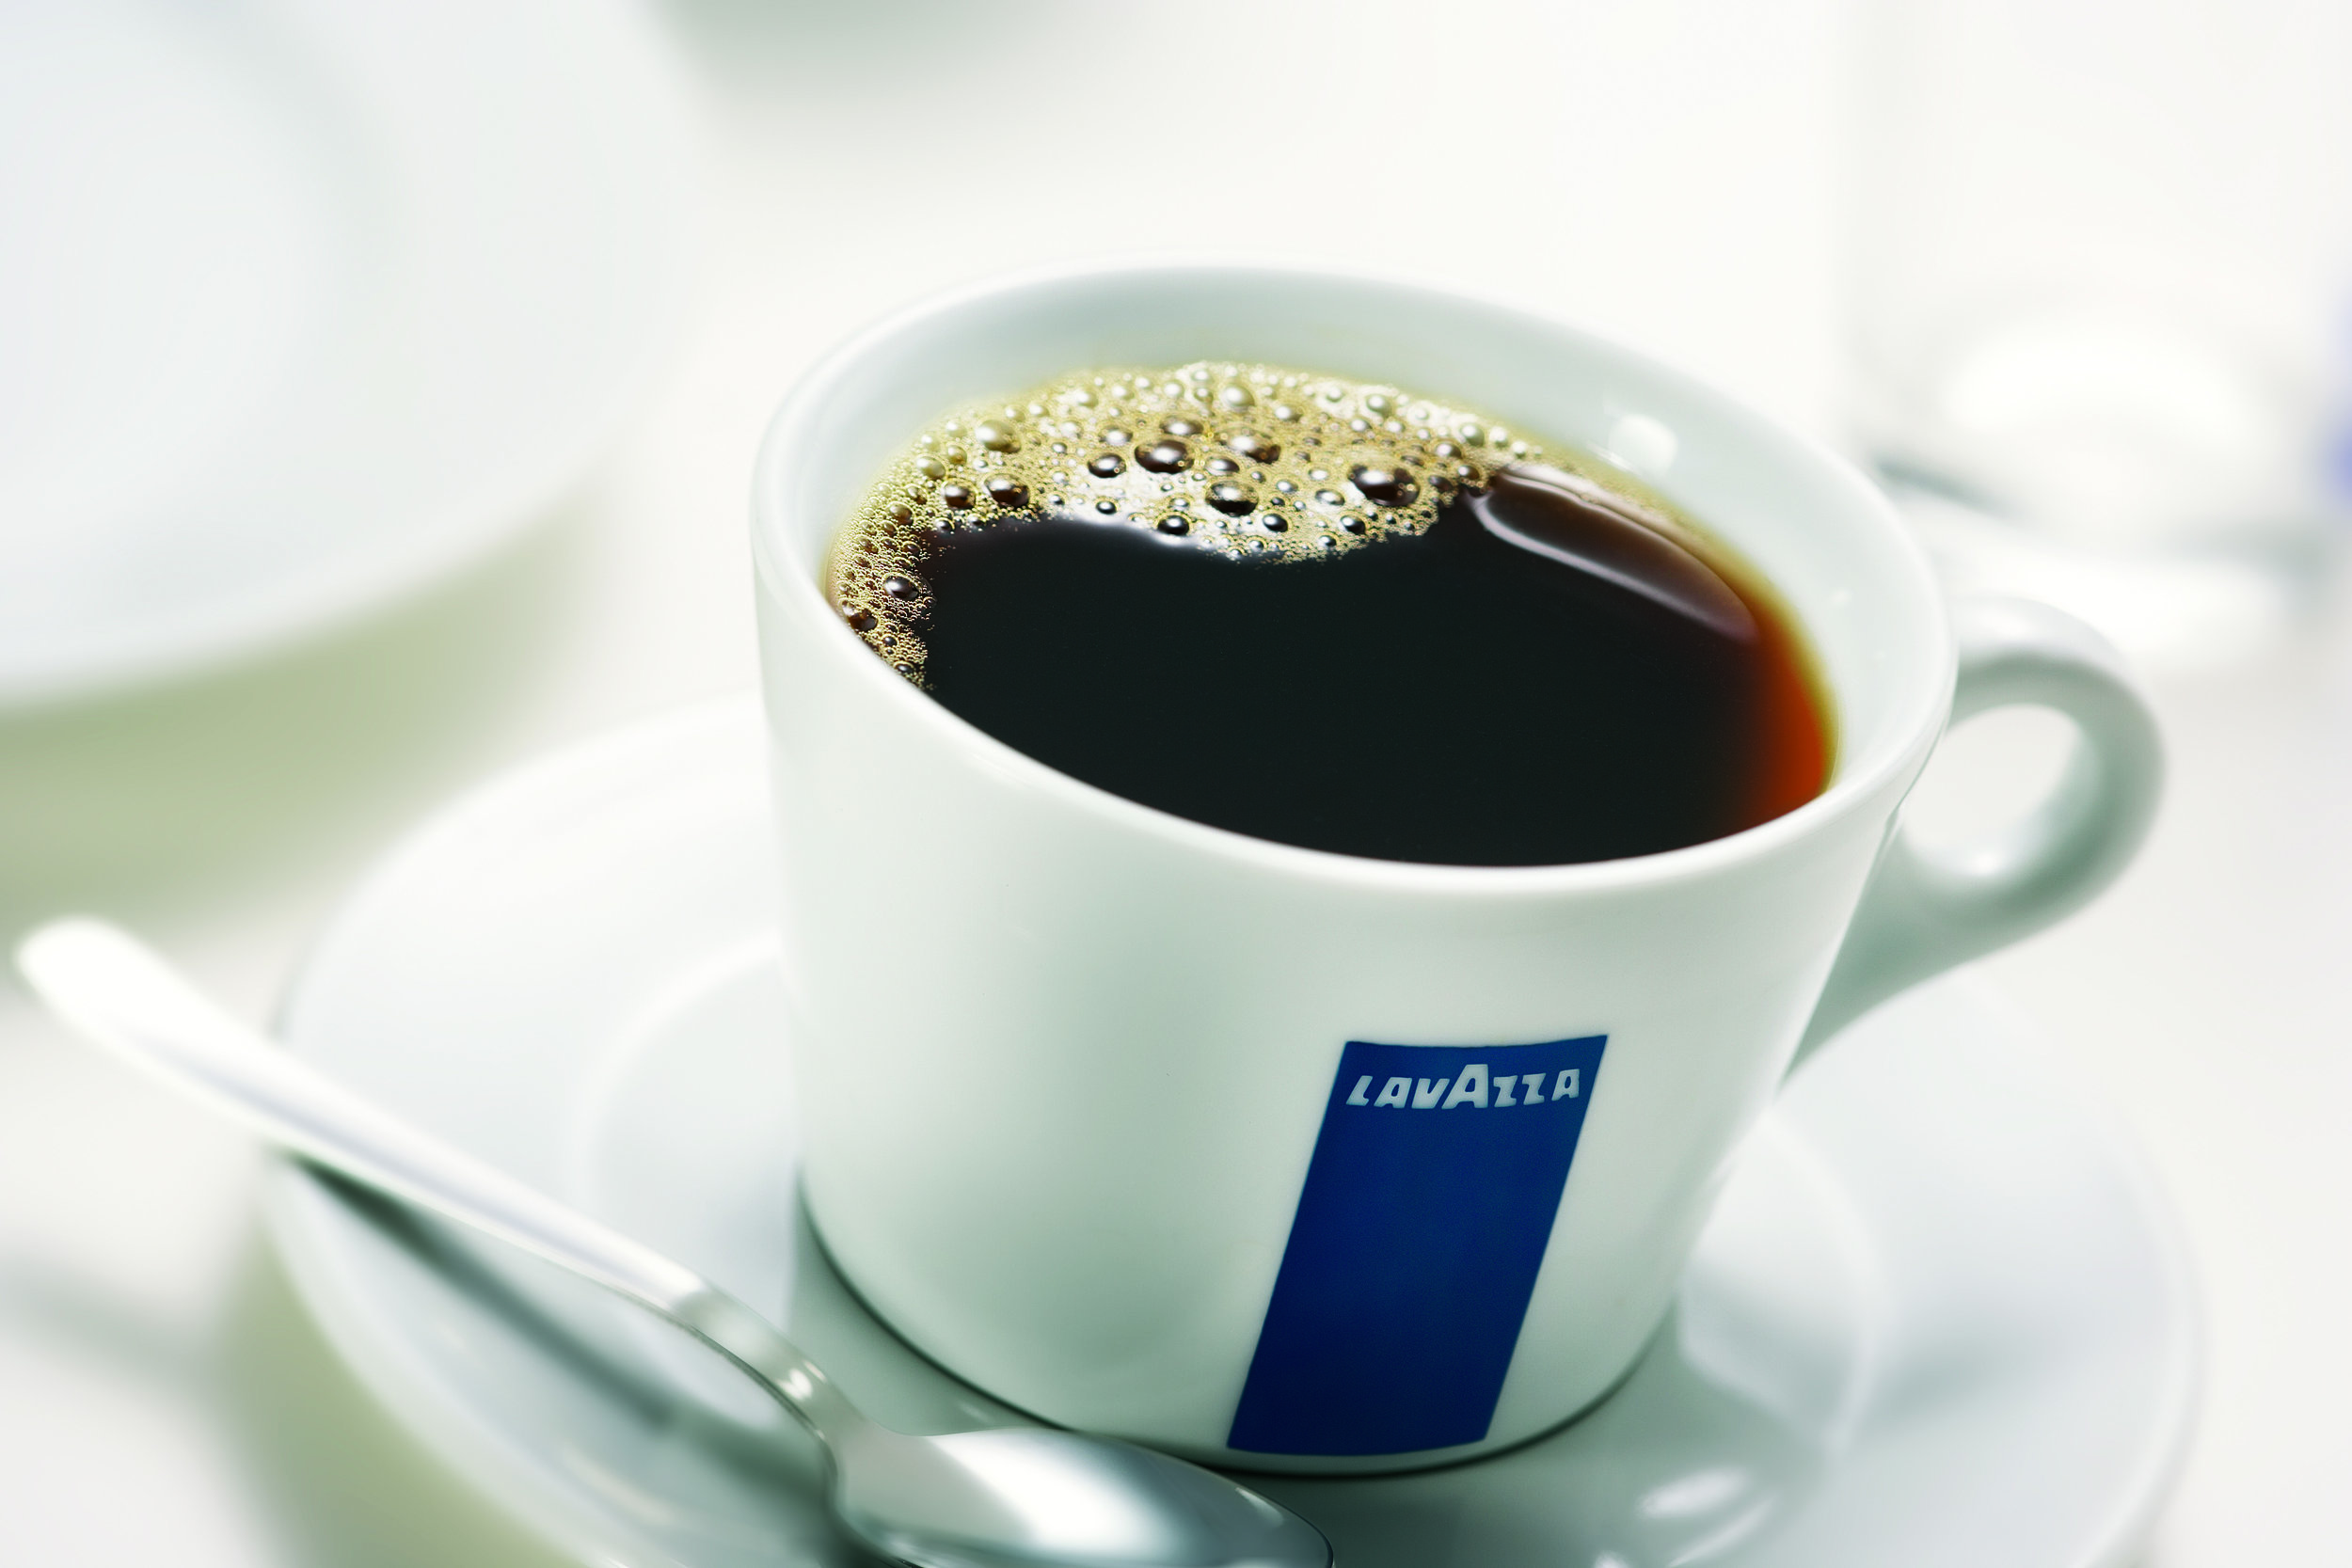 PROUDLY SERVING LAVAZZA